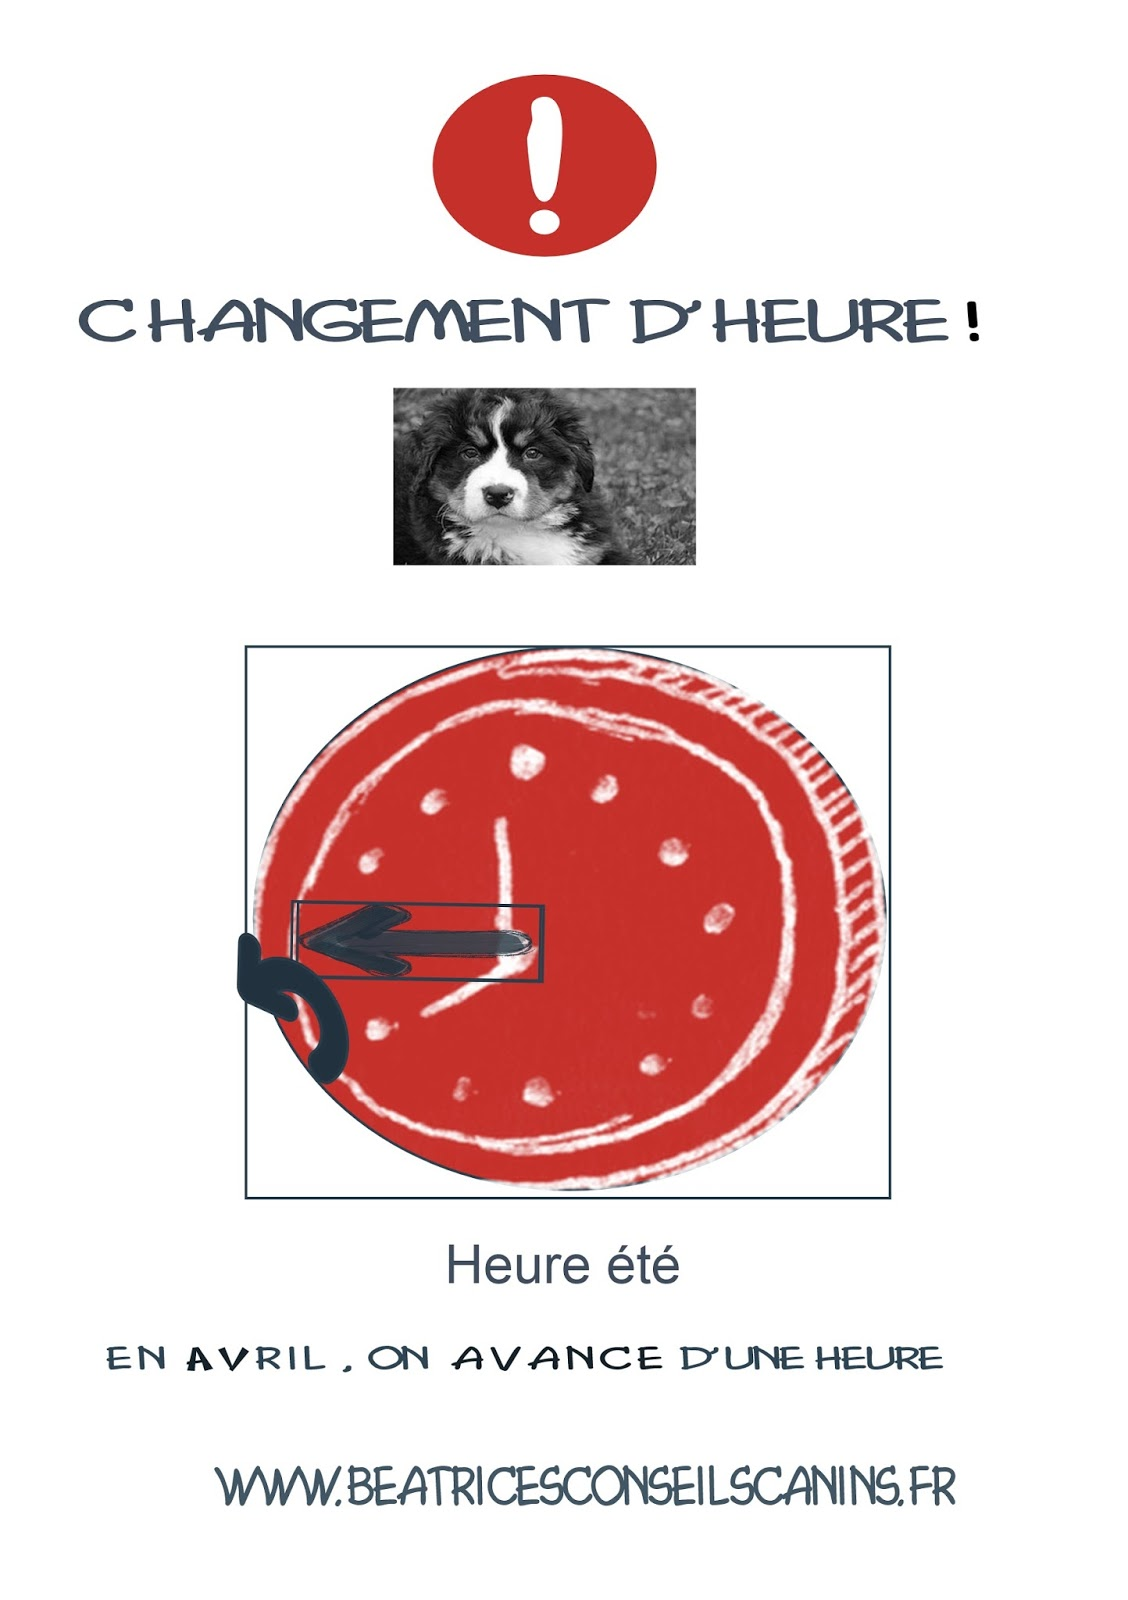 B atrice 39 s conseils canins heure d 39 t - Changement d heure 2017 france ...